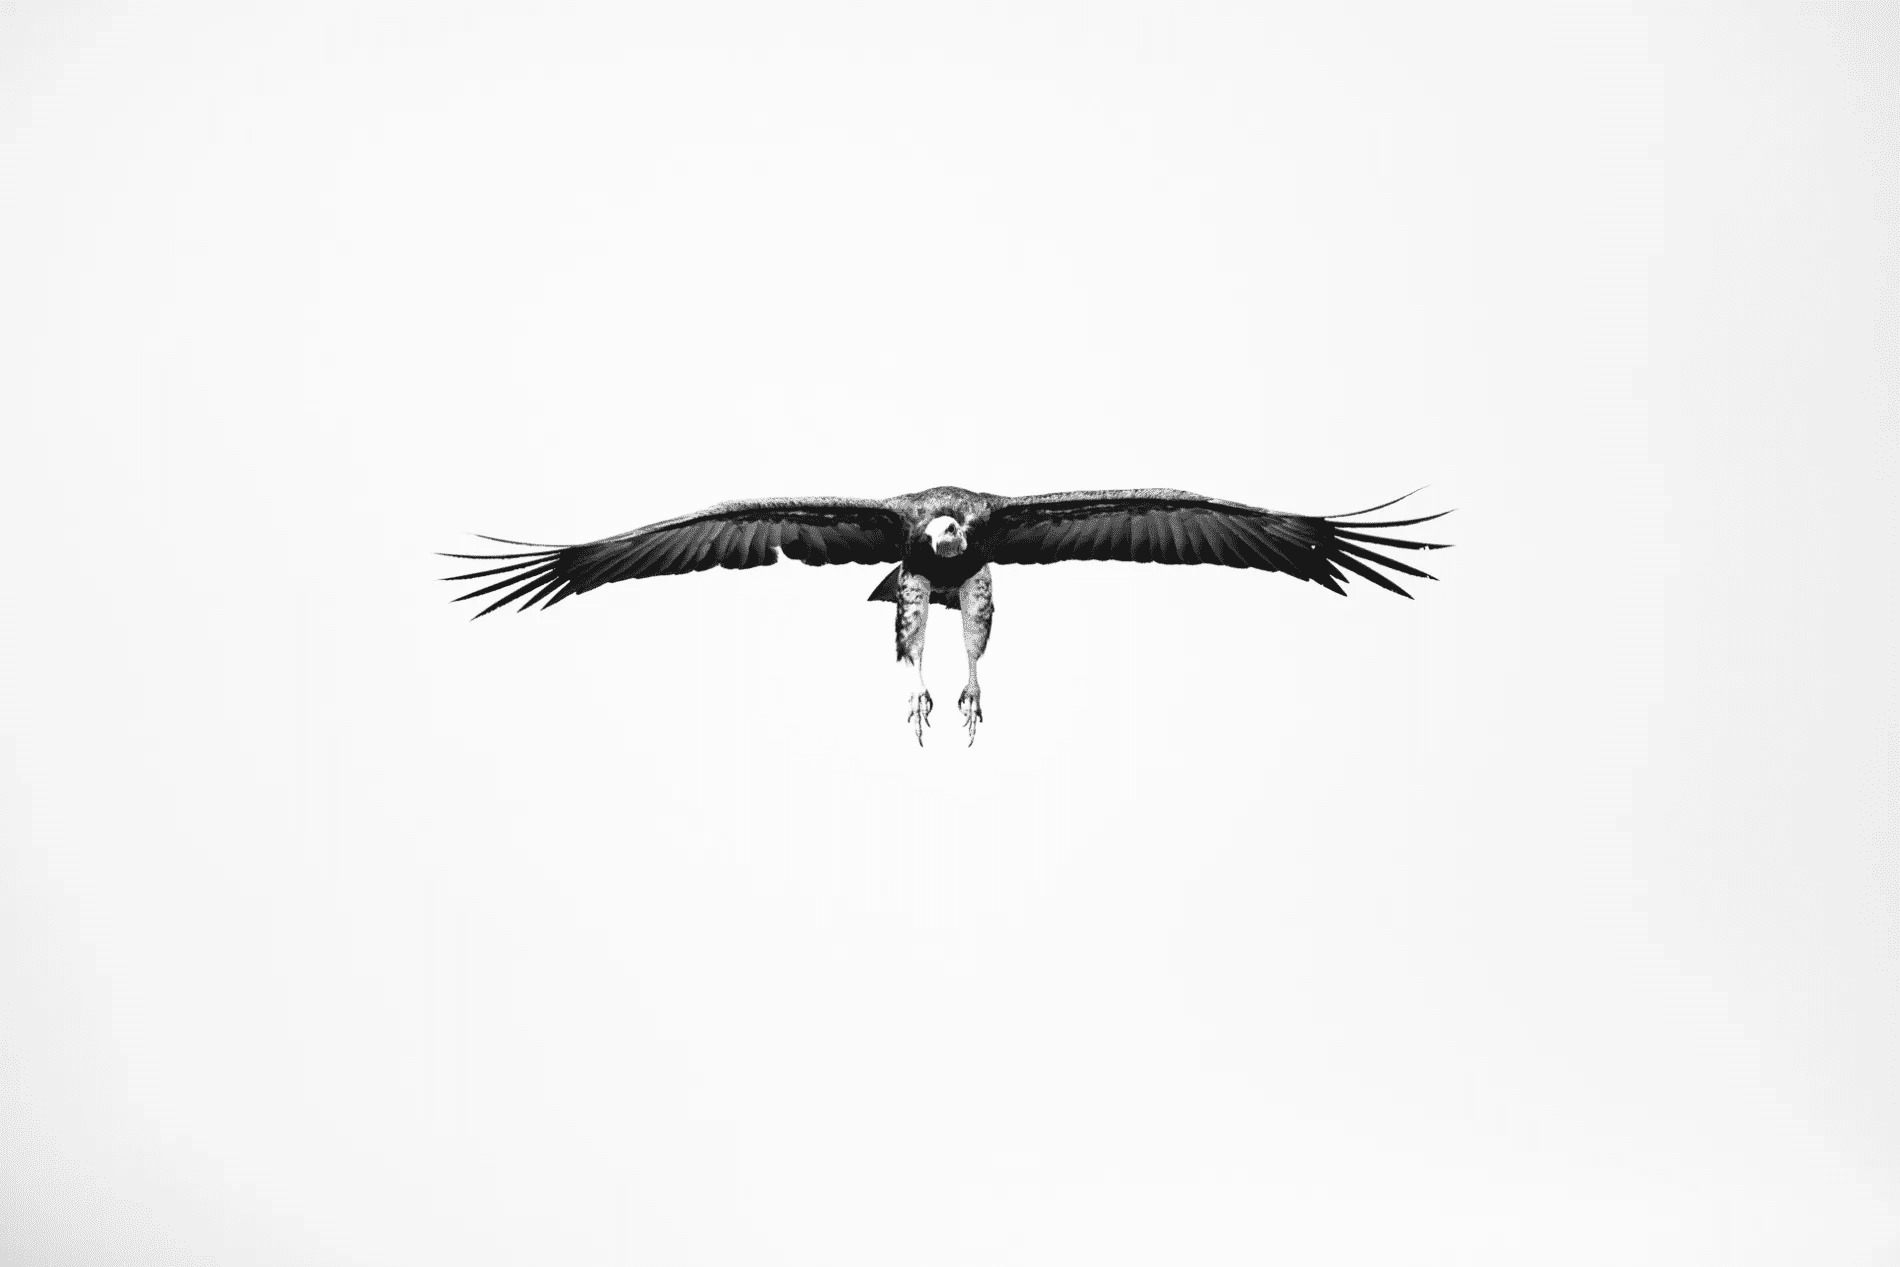 hooded vulture in bw